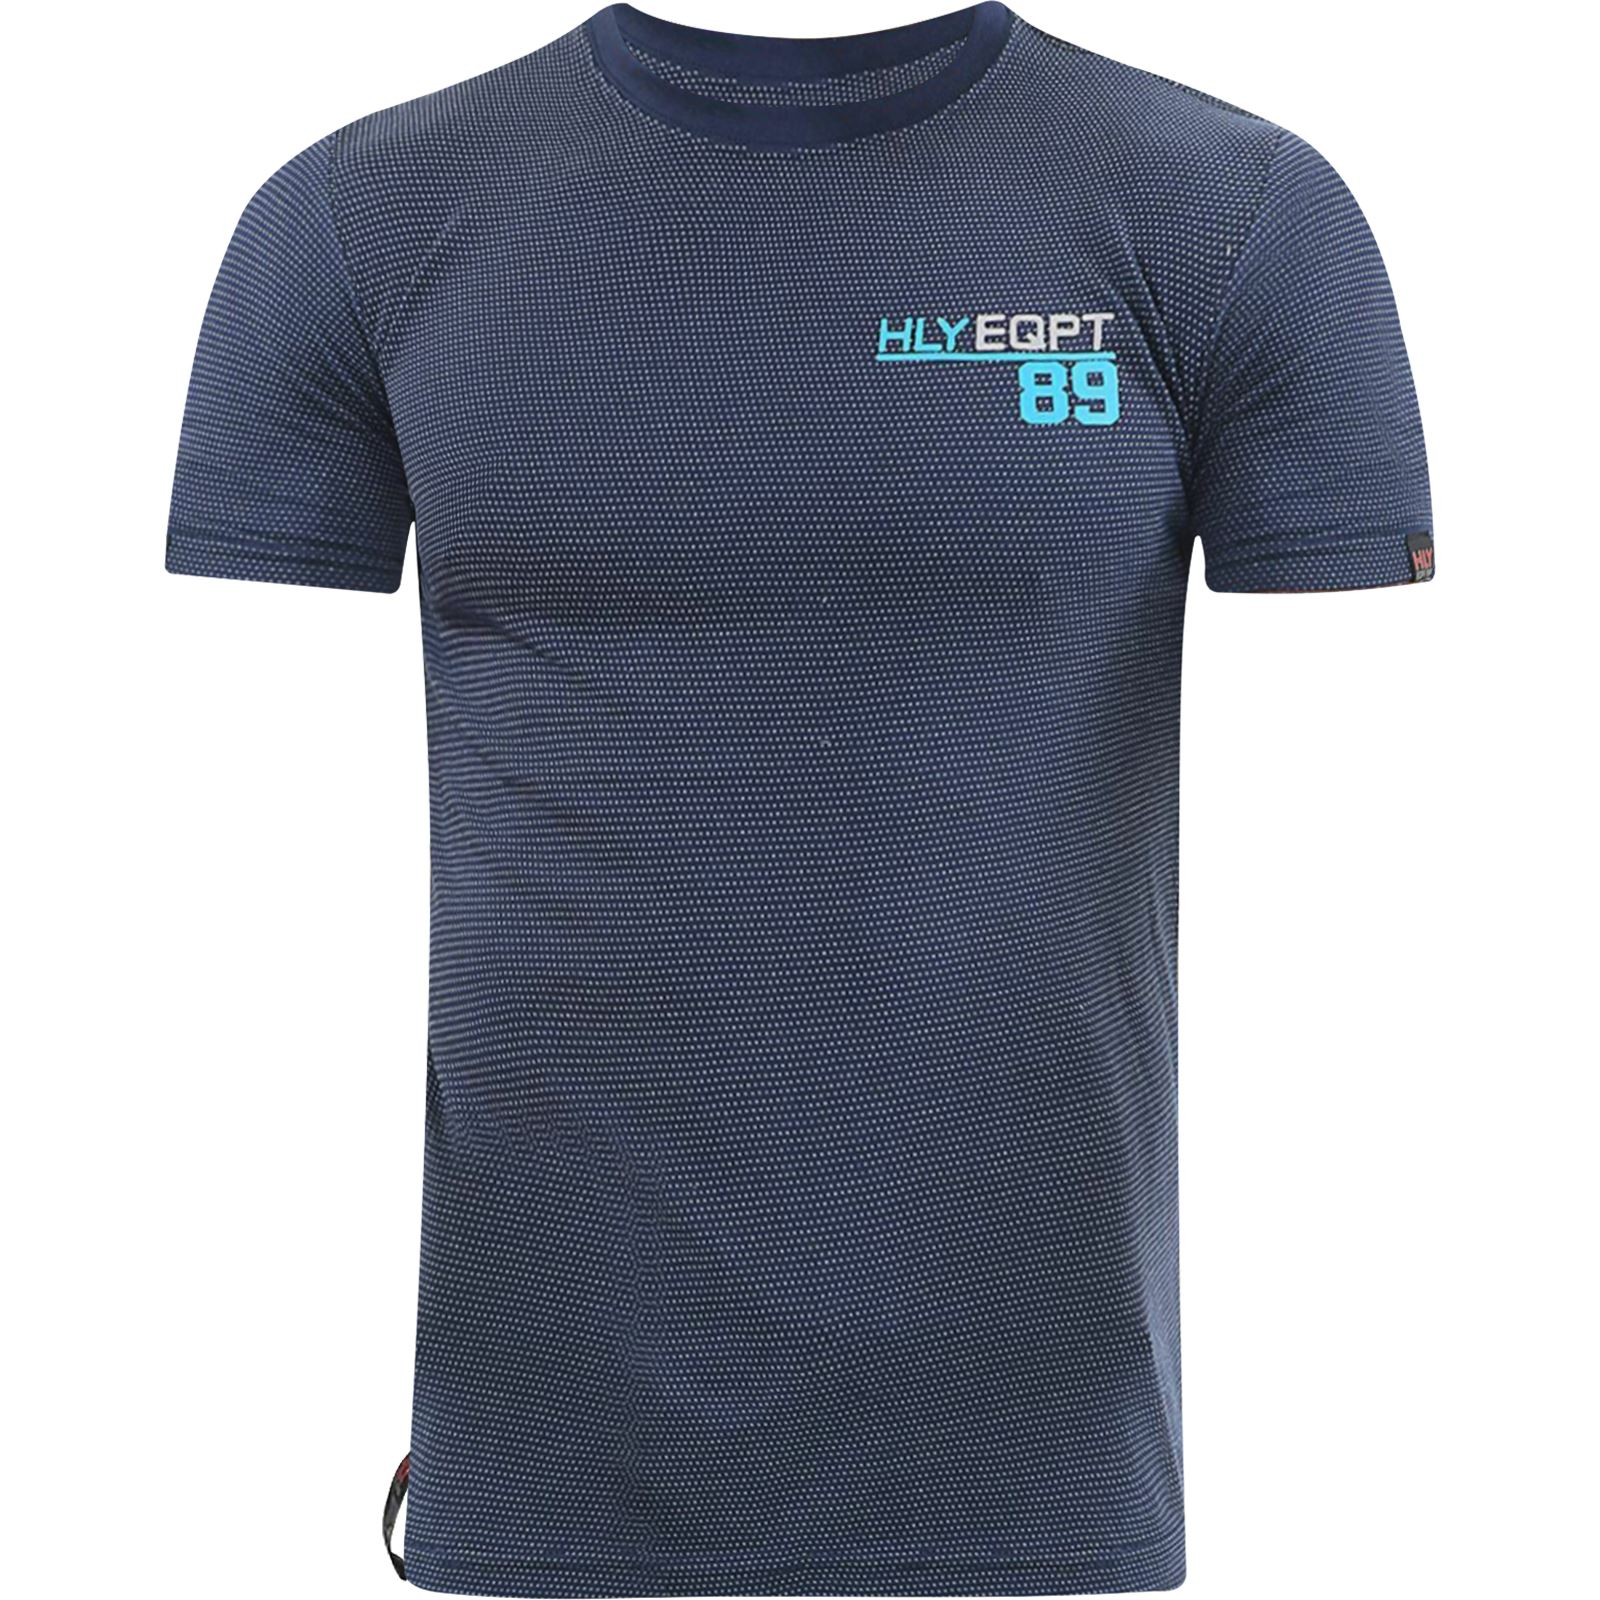 Mens-HLY-T-Shirt-Printed-Designer-100-Cotton-Gym-Athletic-Crew-Neck-Top-Tee thumbnail 9